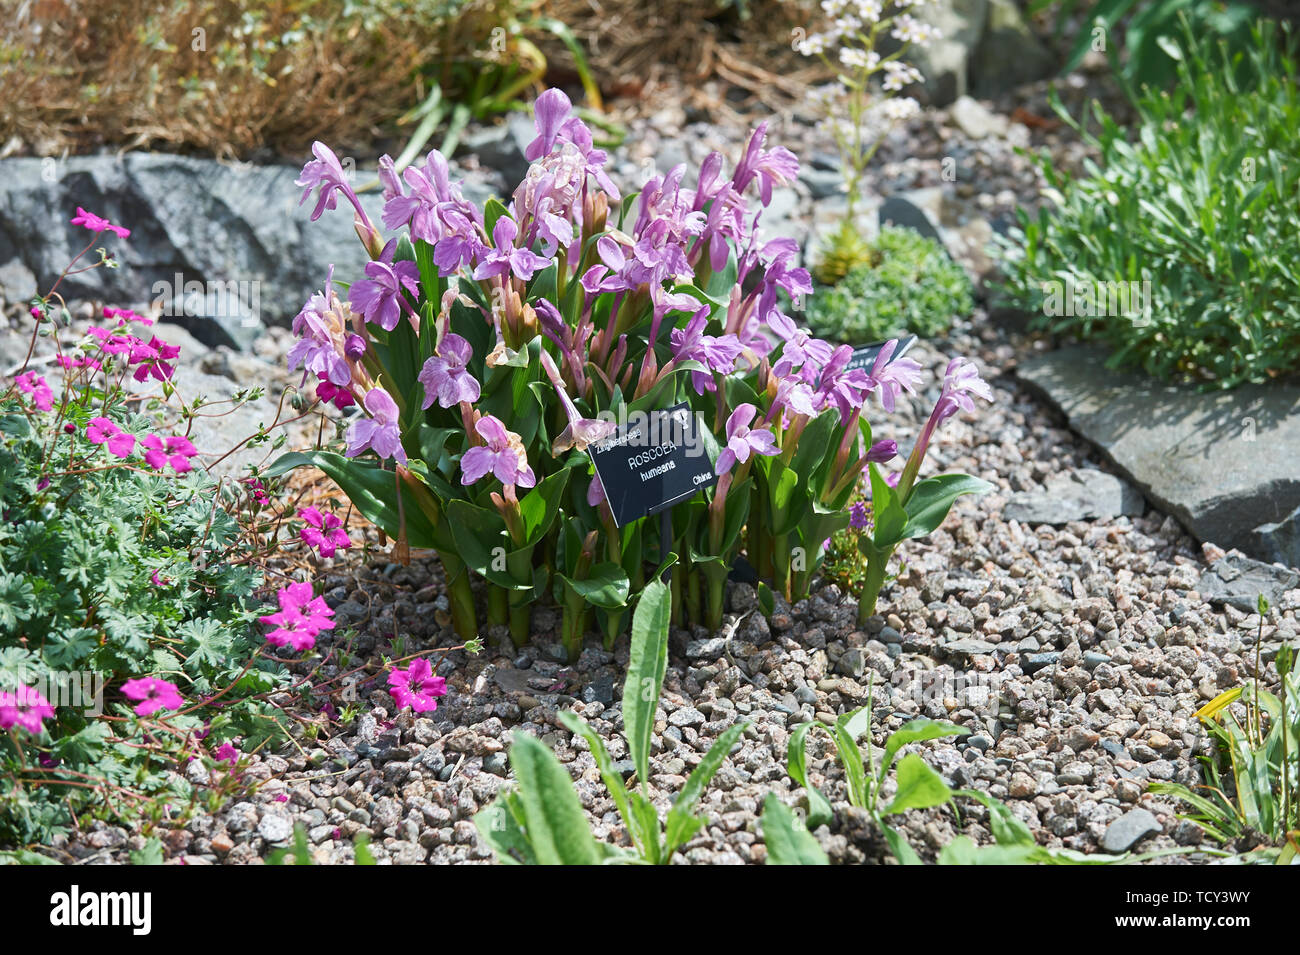 Roscoea humeana flowering in the summer sunshine in and alpine rockery - Stock Image